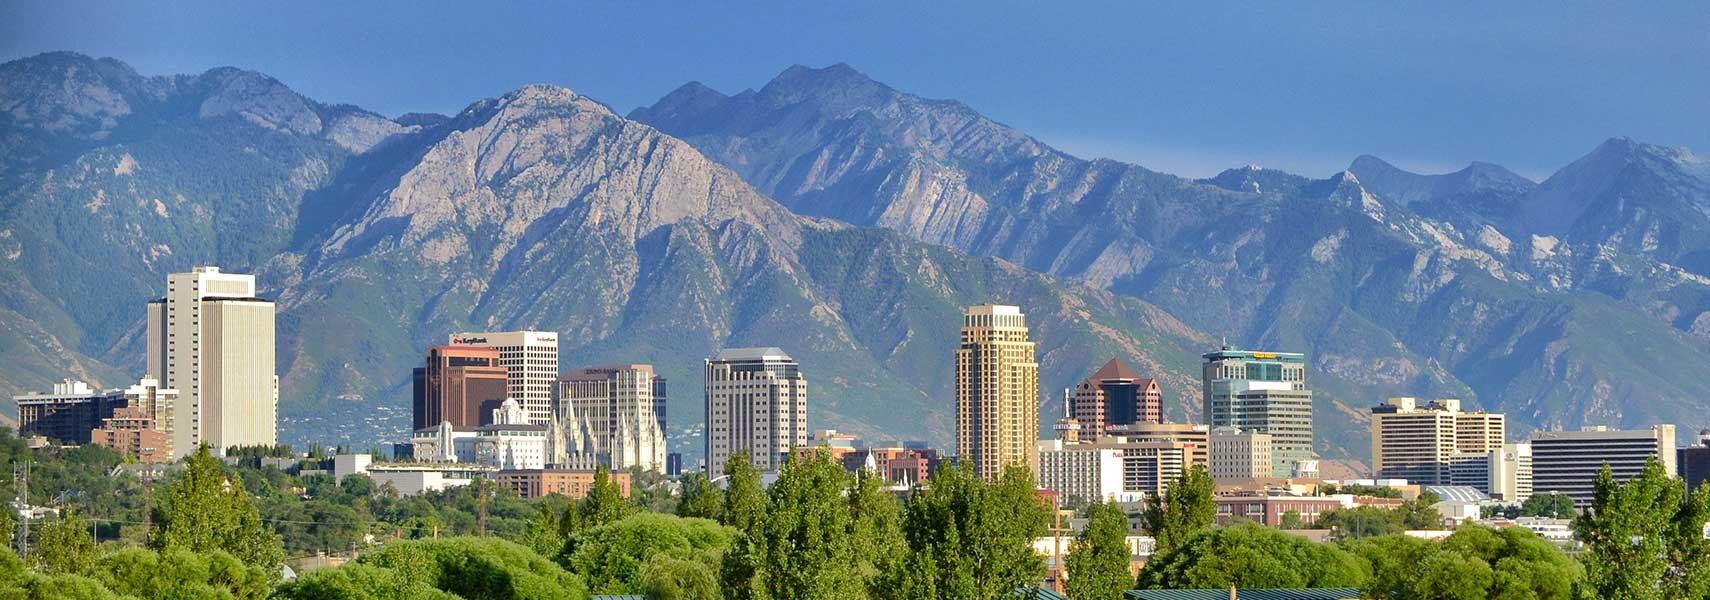 Google Map Of Salt Lake City Utah USA Nations Online Project - Usa map utah